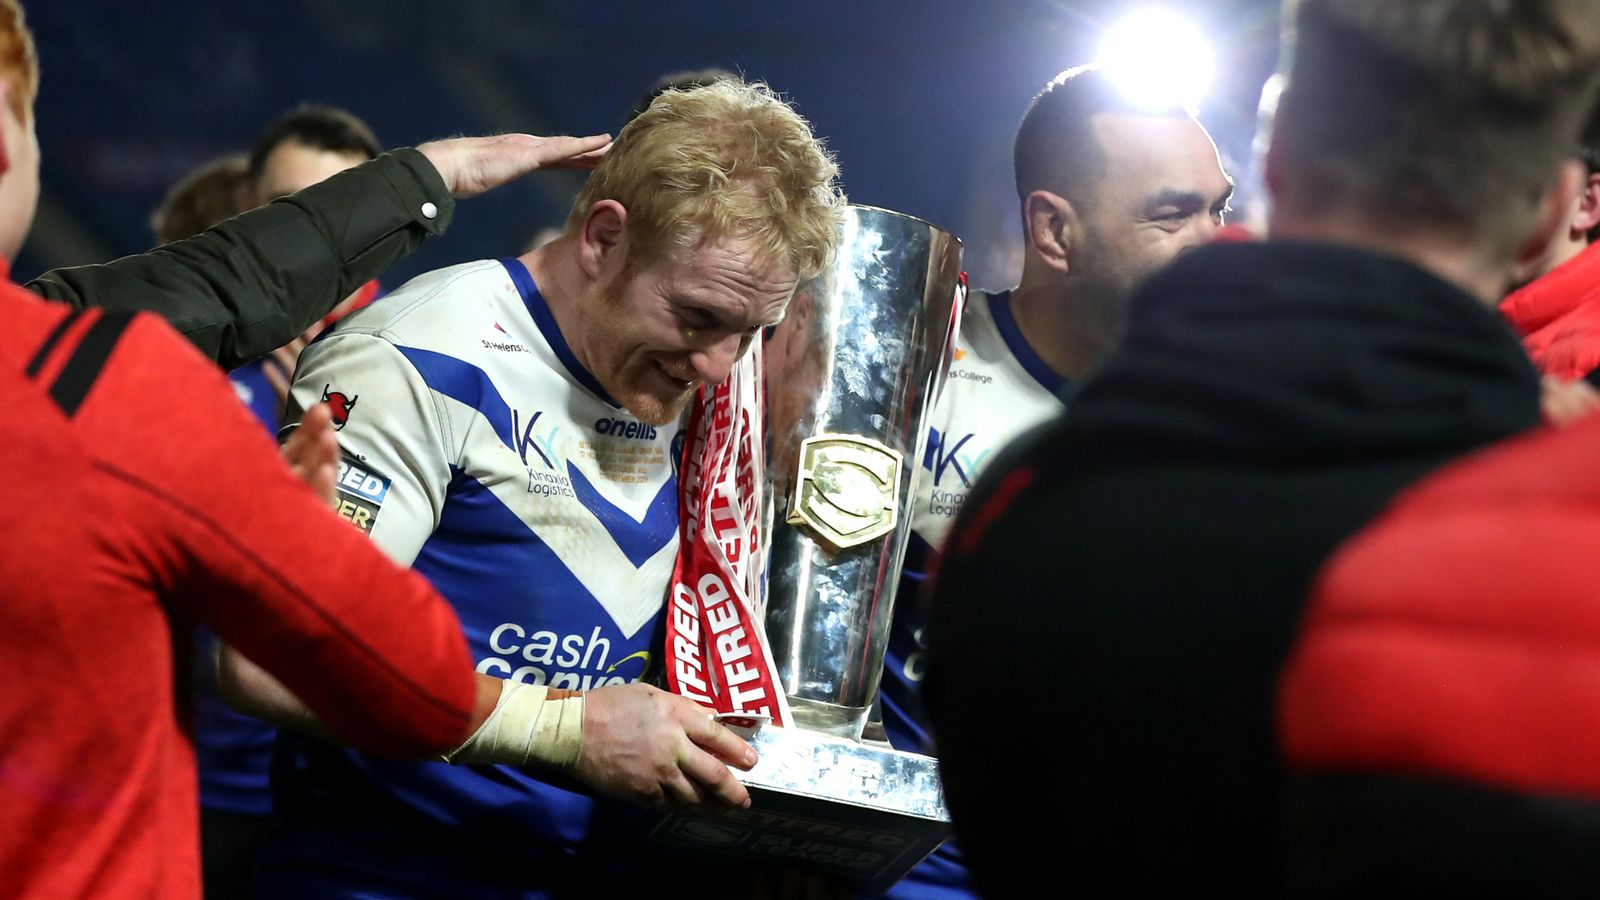 James Graham: St Helens icon goes out a Super League champion